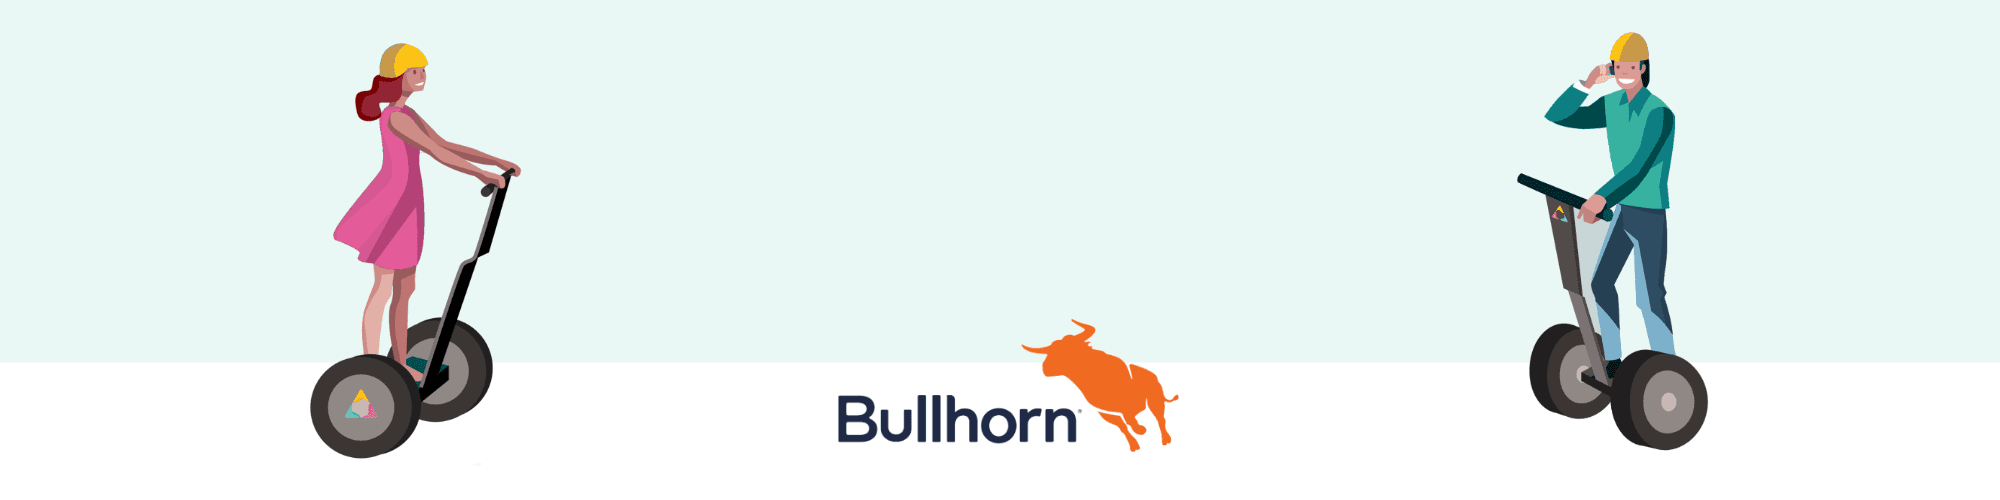 bullhorn-training-tips-for-recruiters